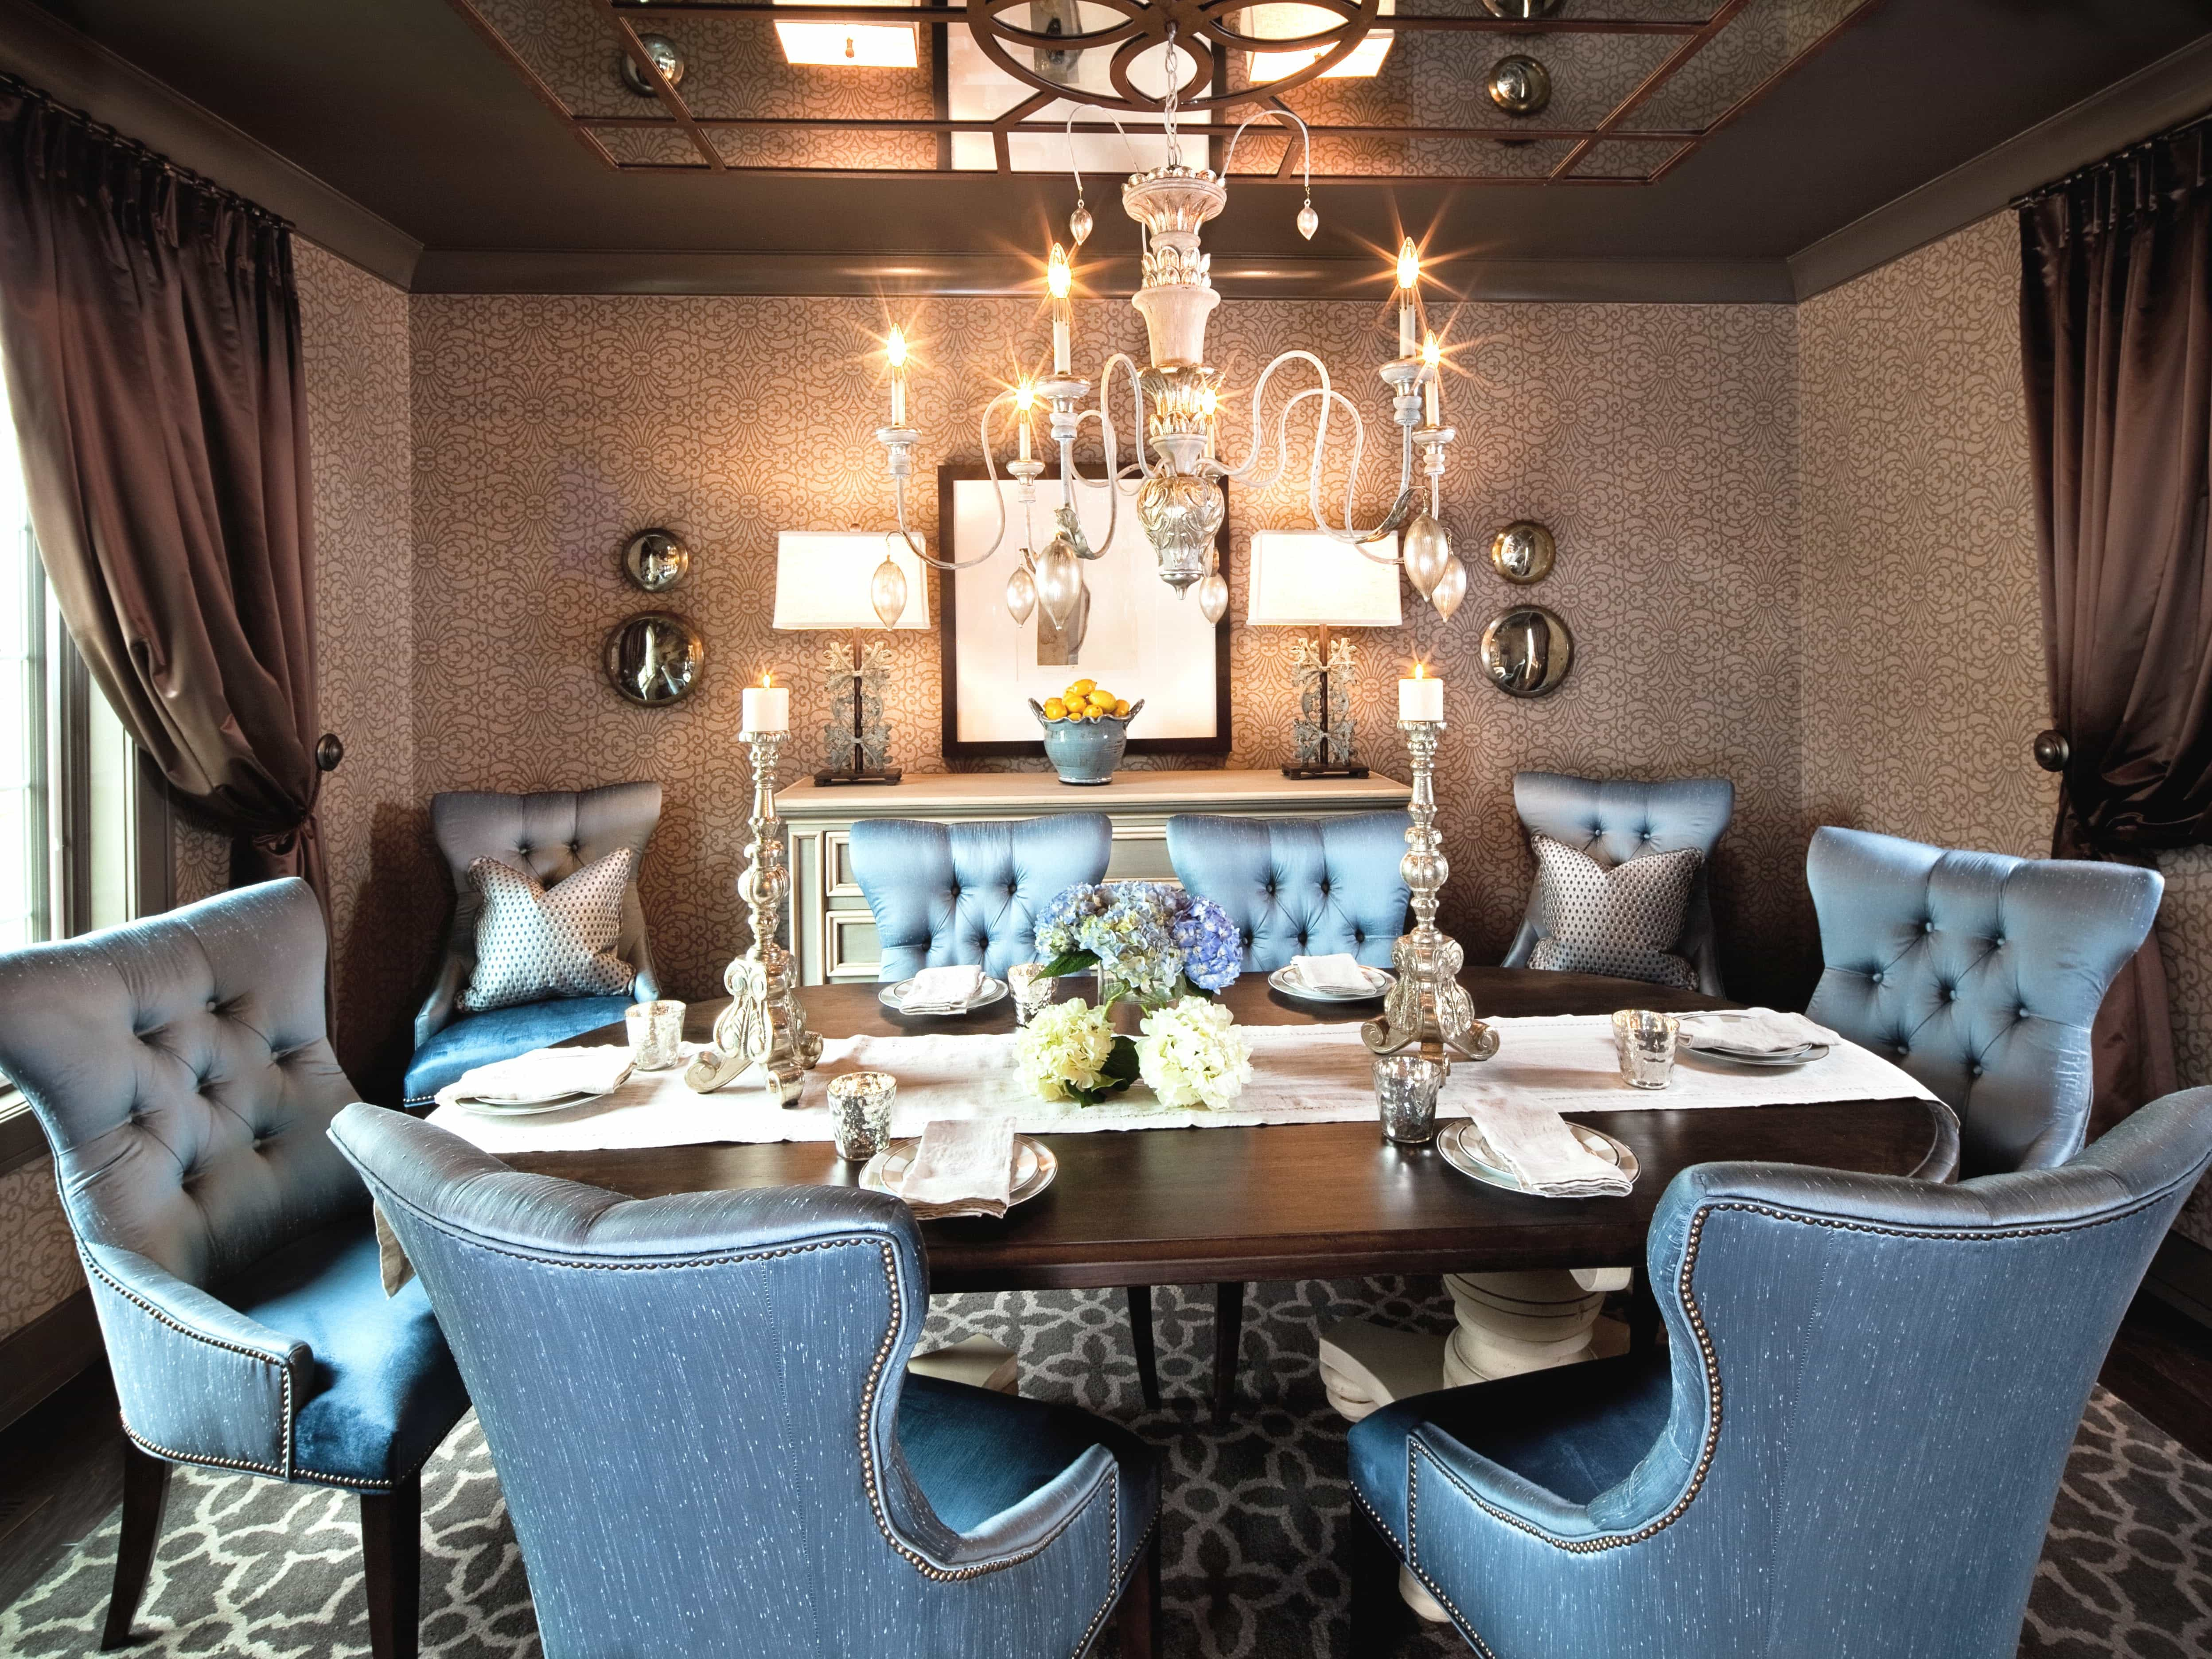 Romantic Dining Room With Tufted Dining Chairs (View 8 of 21)